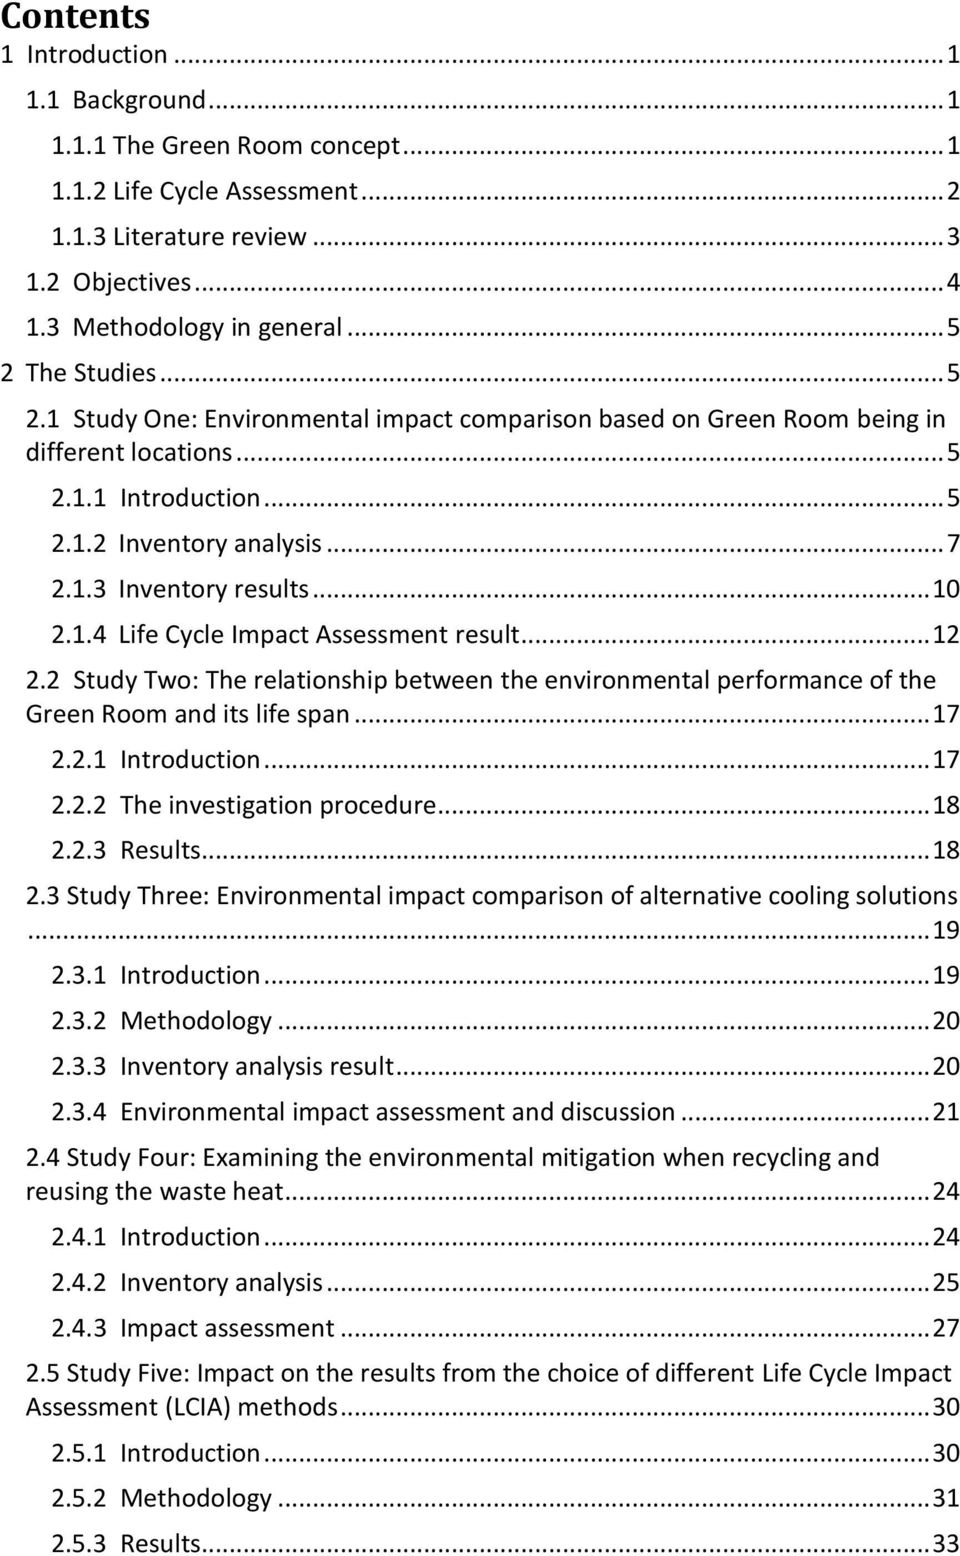 .. 10 2.1.4 Life Cycle Impact Assessment result... 12 2.2 Study Two: The relationship between the environmental performance of the Green Room and its life span... 17 2.2.1 Introduction... 17 2.2.2 The investigation procedure.